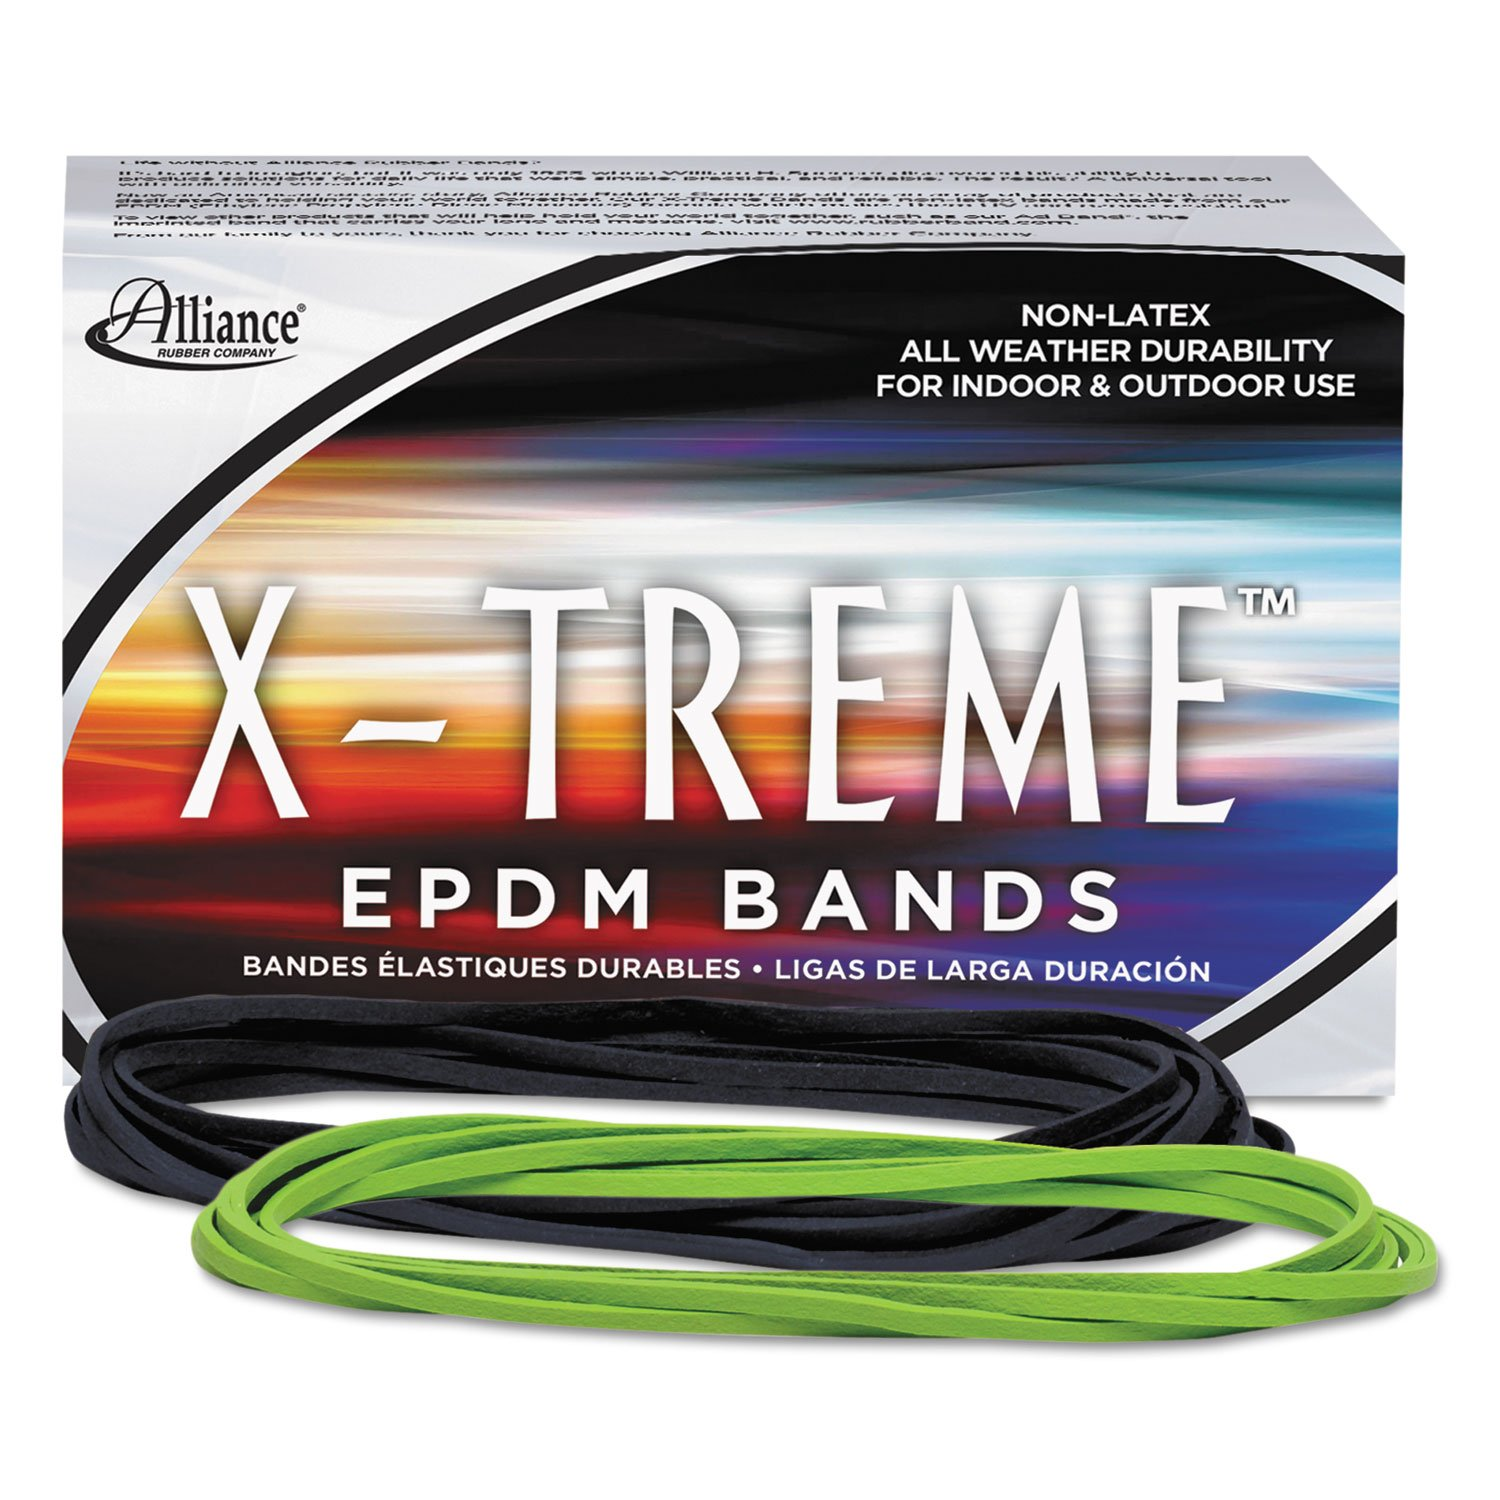 Alliance 02005 X-treme File Bands, 117B, 7 x 1/8, Lime Green, Approx. 175 Bands/1lb Box